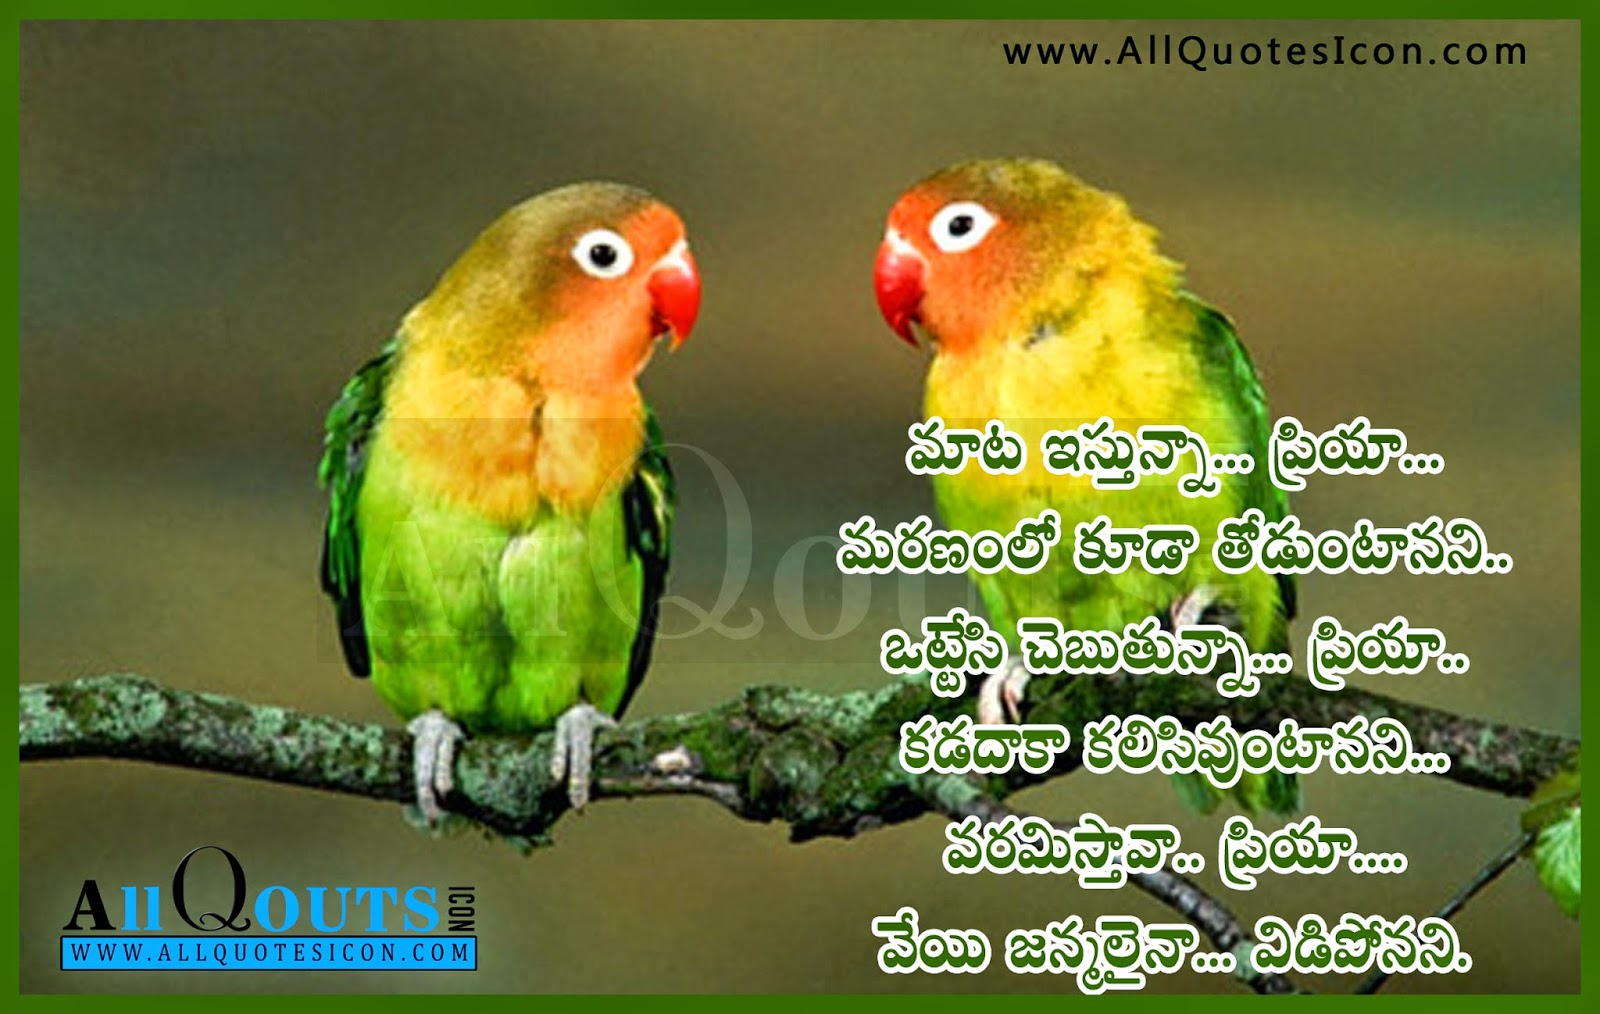 Telugu Love Quotes Captivating Telugu Love Quotes And Images  Www.allquotesicon  Telugu